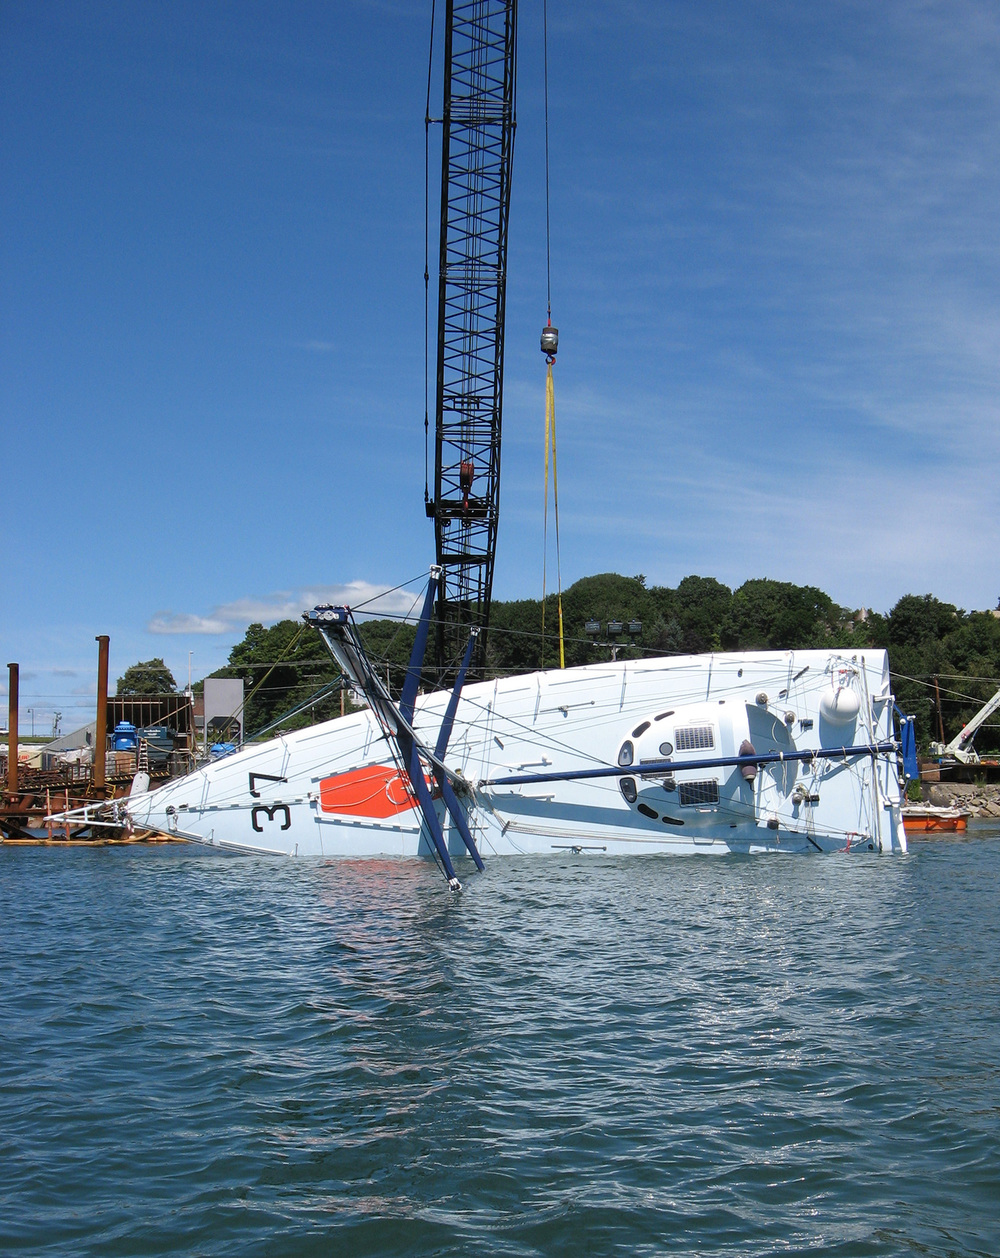 This test is done by first lifting            the boat out of the water and taking an accurate weight with a certified            load cell. When the boat is out of the water, a strop is passed around            the bulb. The boat is lowered back in the water and the crane cable            is attached to the strop. The boat is heeled over 90 degrees. With the            boat at 90 degrees, a strop is passed around the masthead. A load cell            is attached to the strop and to a fixed point, like a skiff.